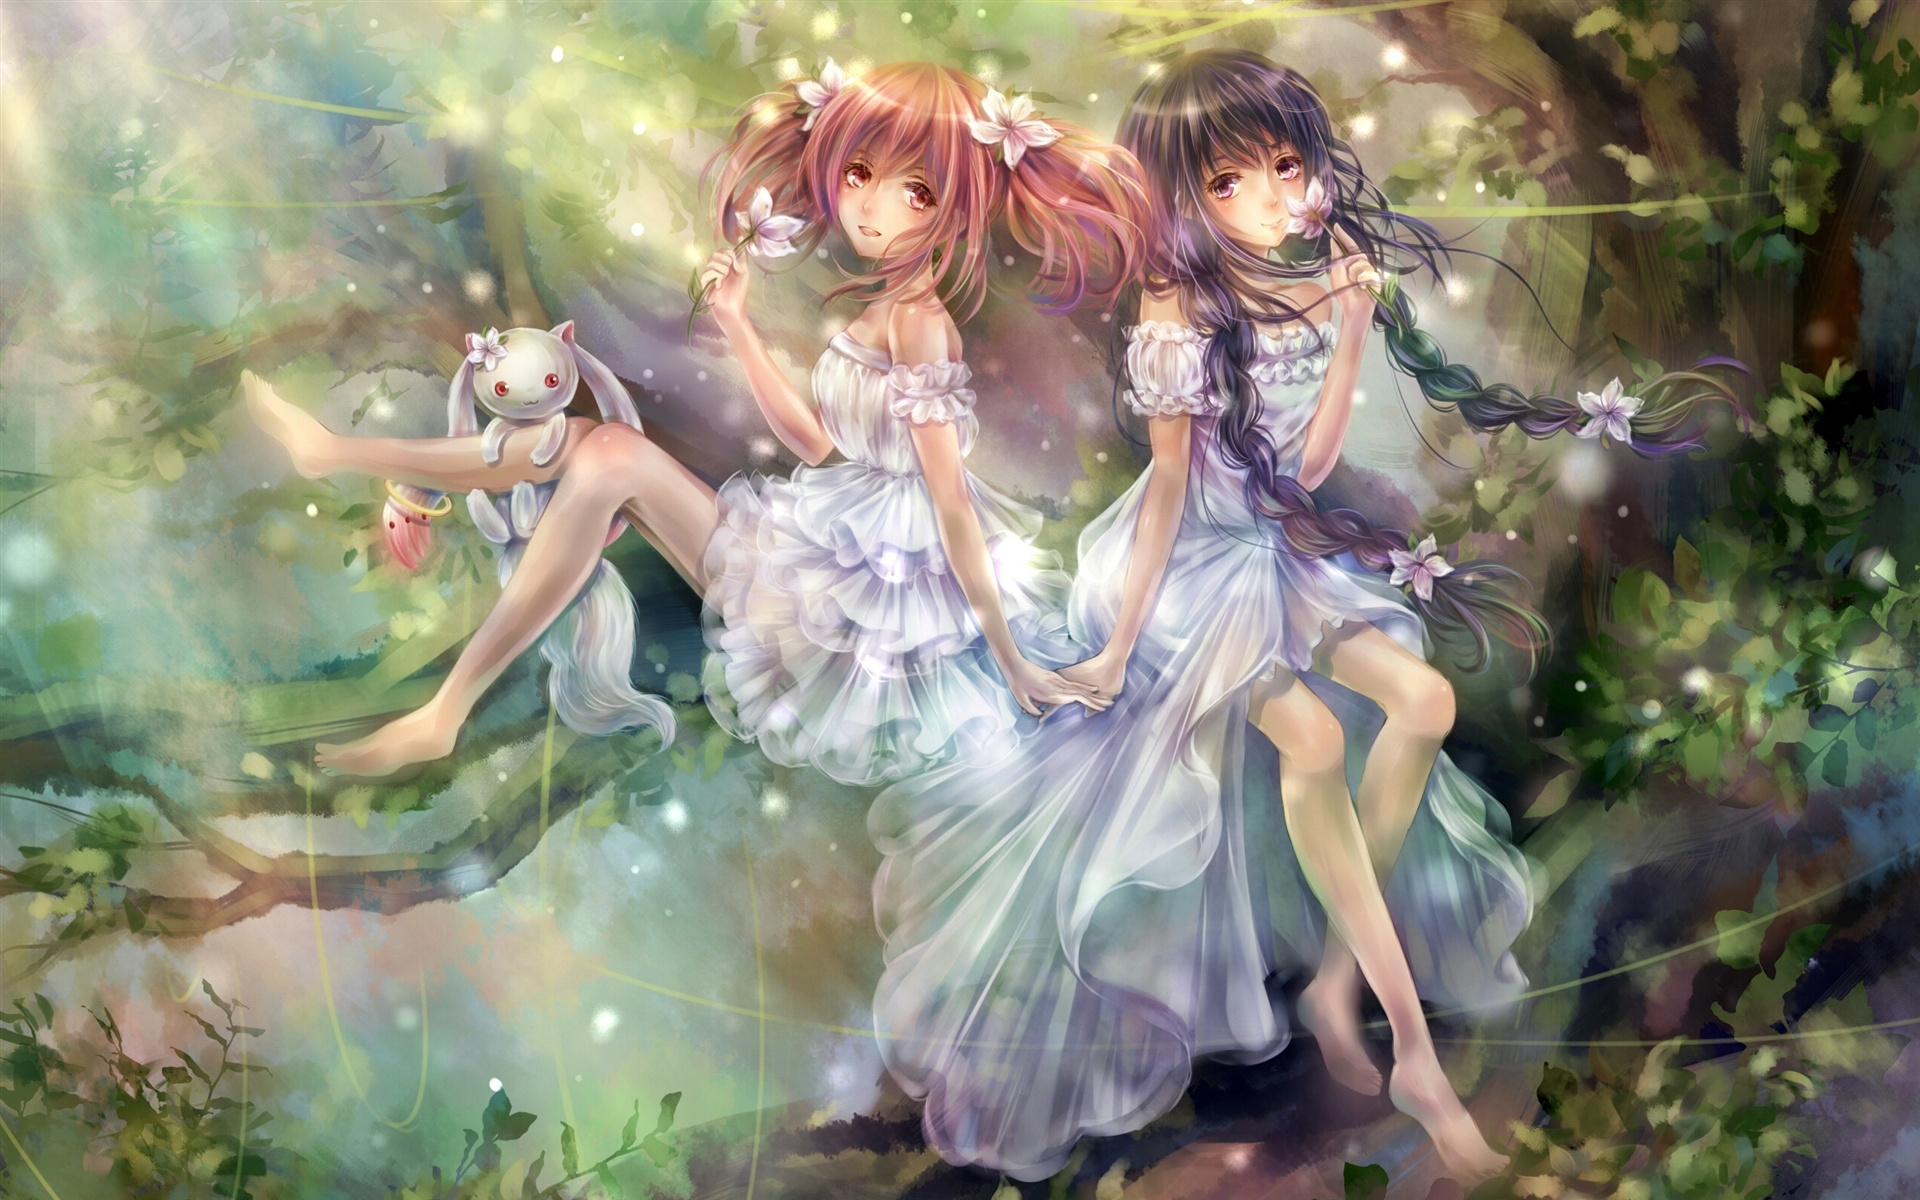 Magic girls anime wallpaper - 1920x1200